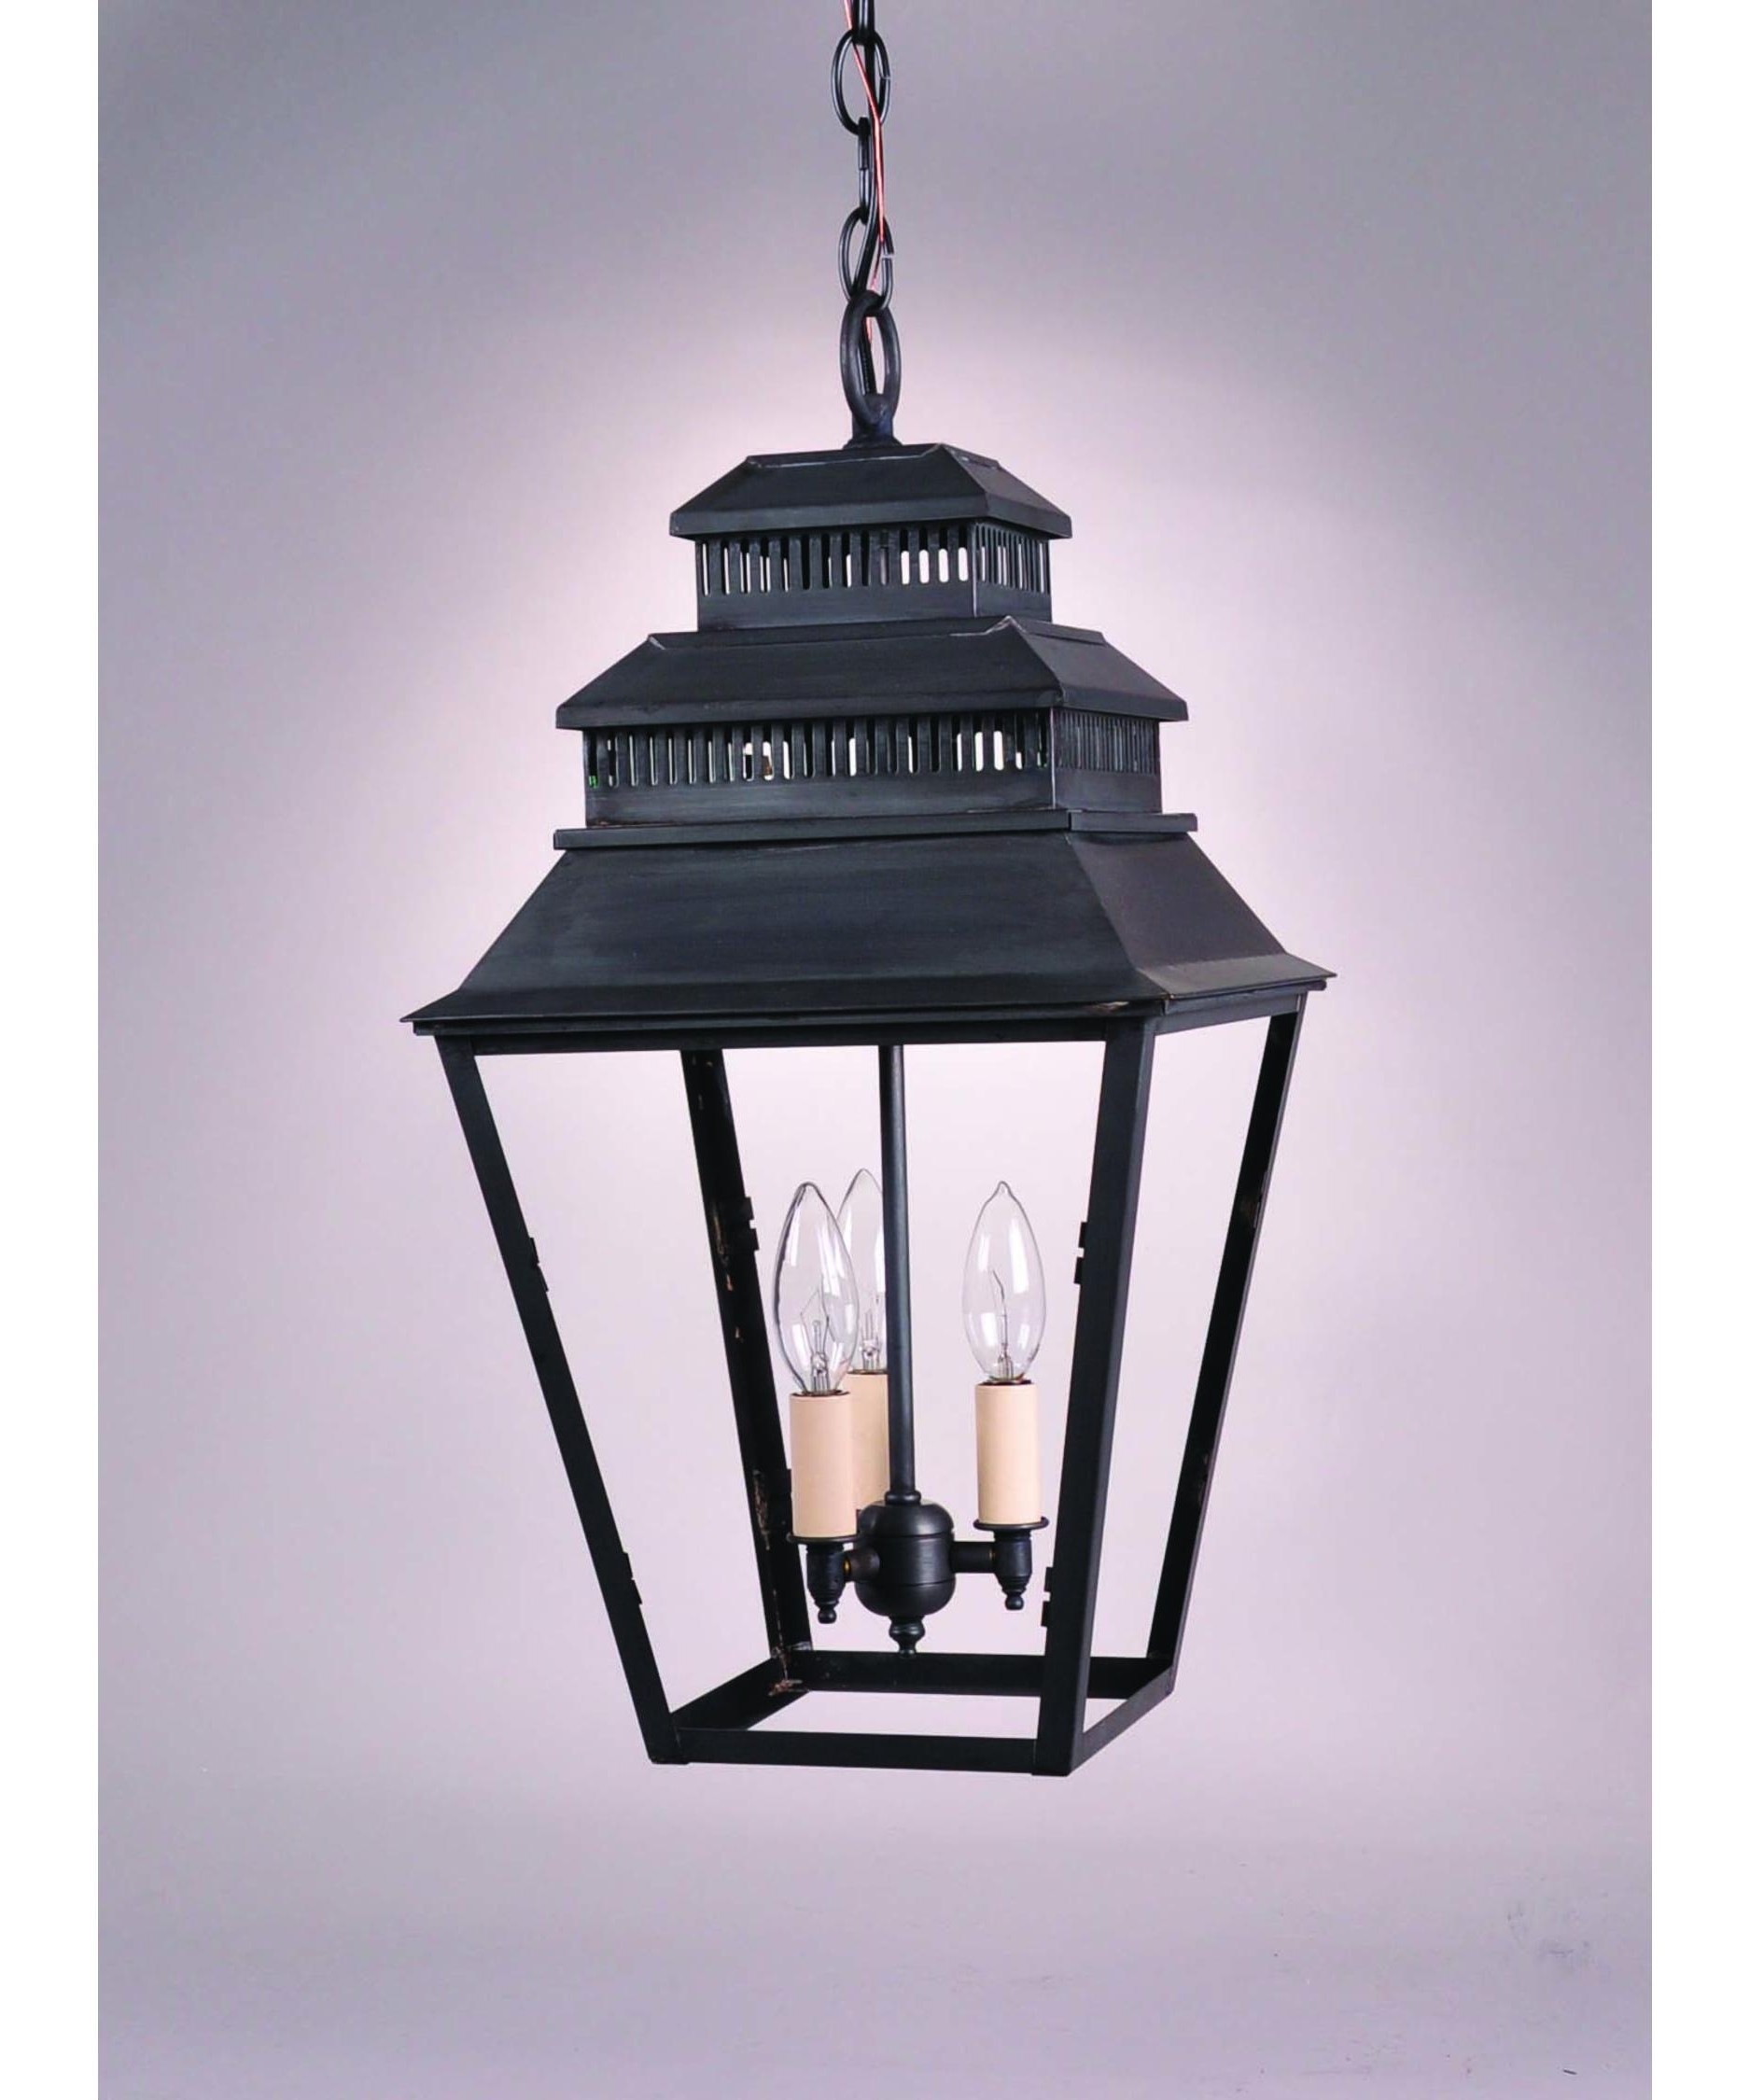 2019 Antique Outdoor Hanging Lights Within Northeast Lantern 8642 Med Elryan 11 Inch Wide 1 Light Outdoor (View 2 of 20)